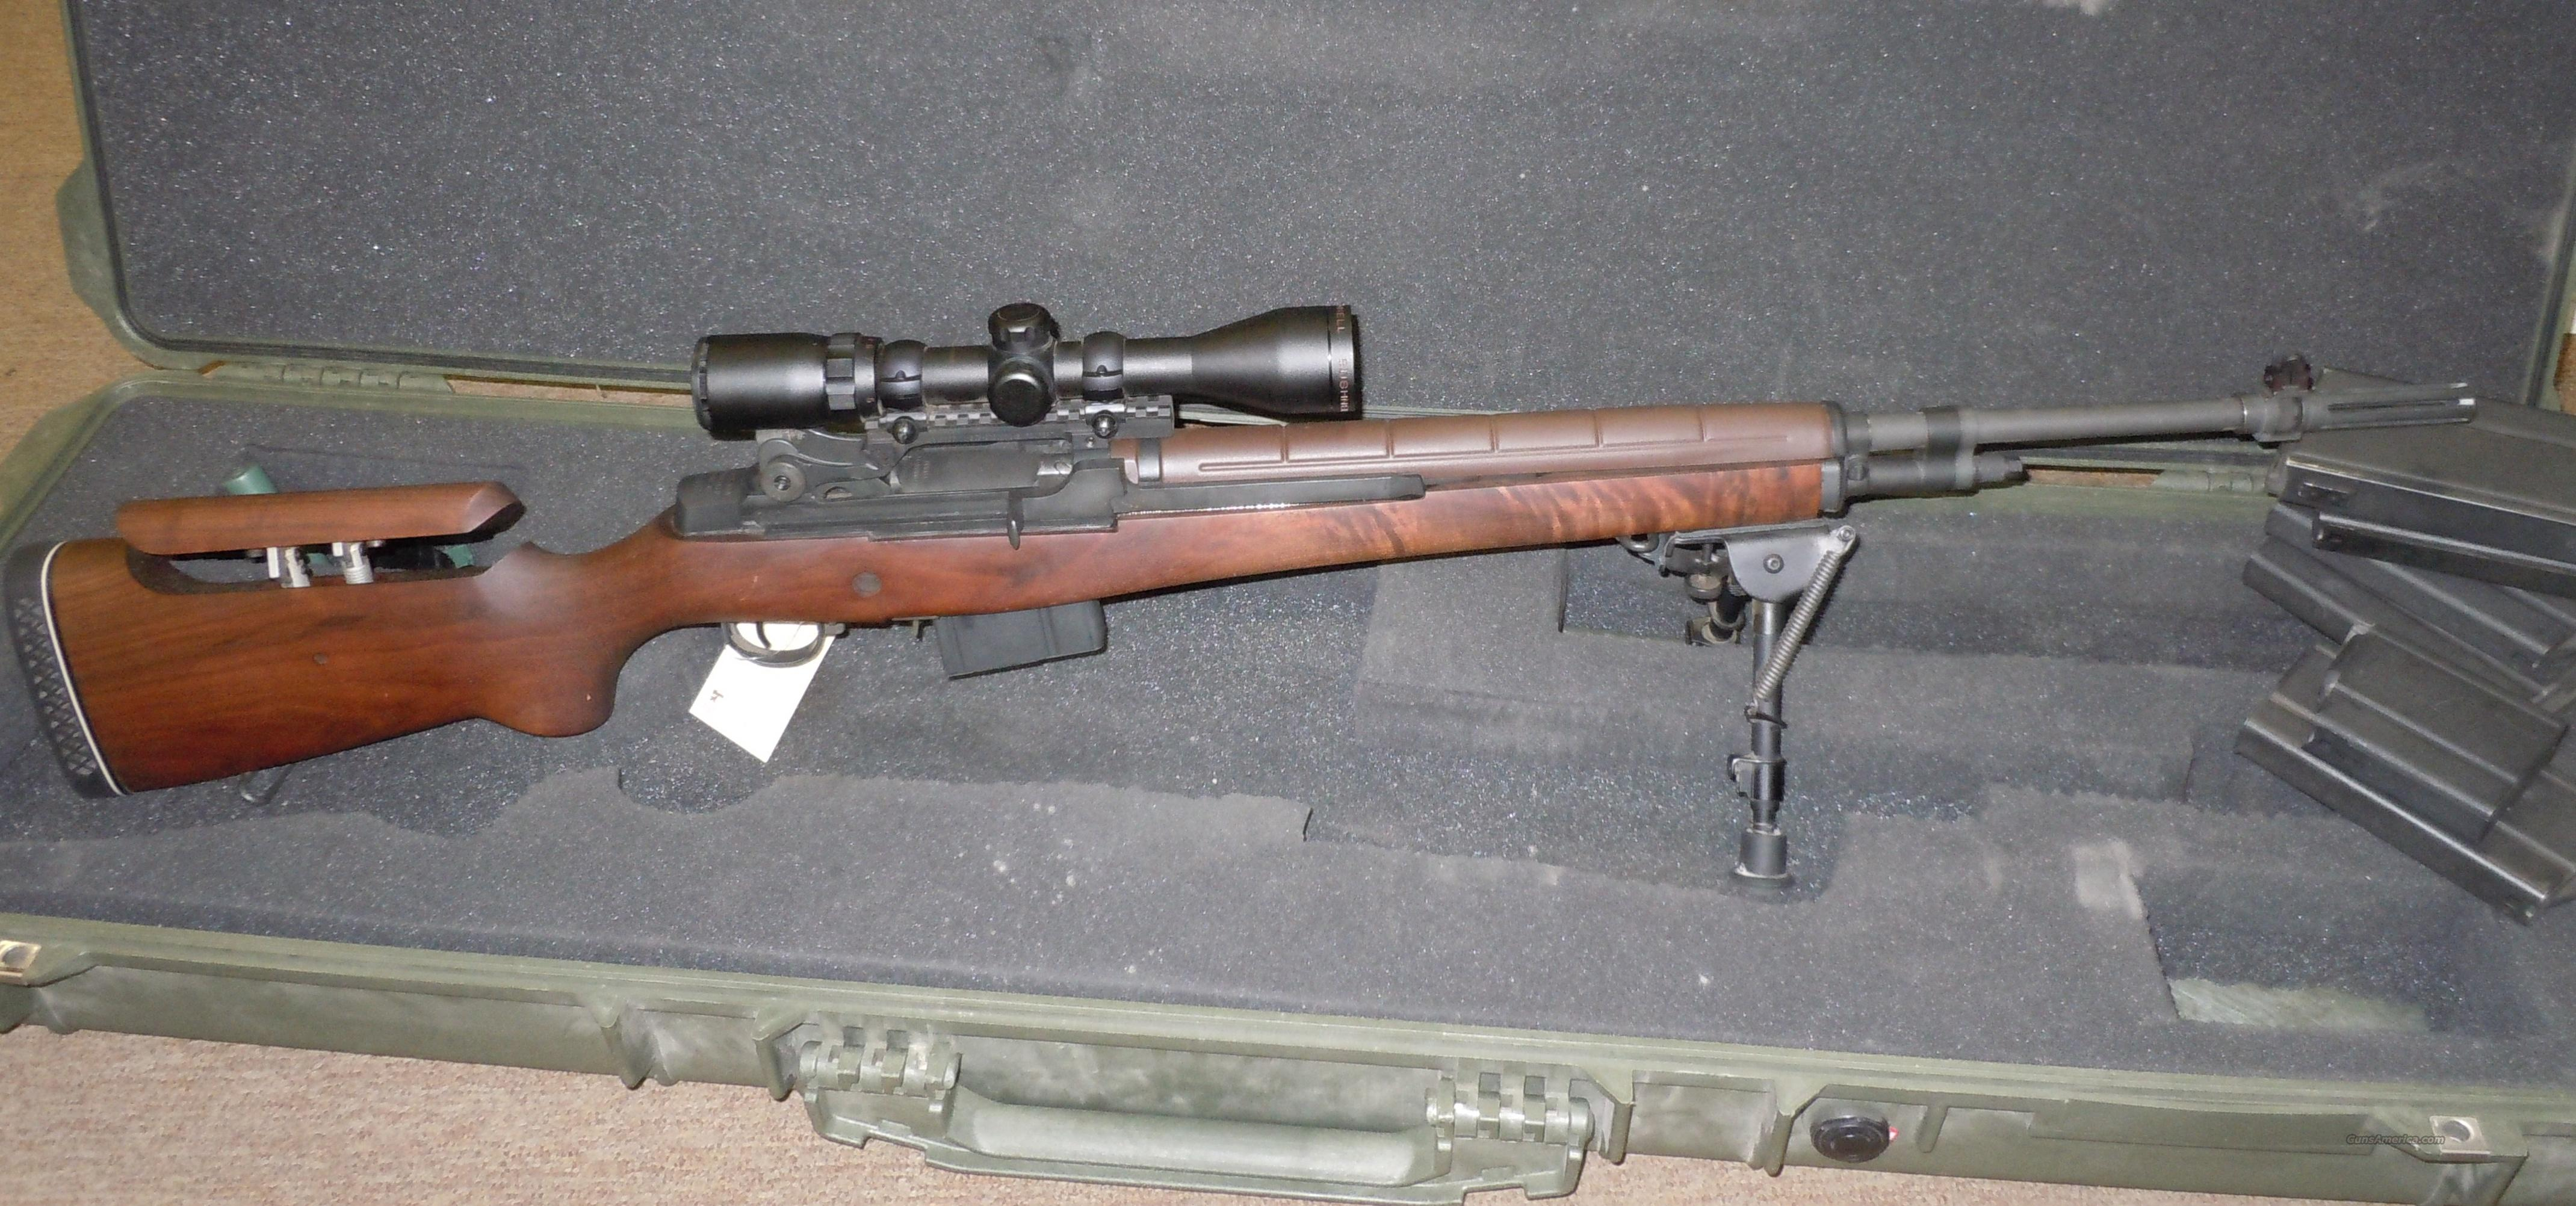 SPRINGFIELD ARMORY M1A (M21) 308 WIN RIFLE W/ ADJUSTABLE WOODEN STOCK AND GENERATION 3 SCOPE MOUNT  Guns > Rifles > Springfield Armory Rifles > M1A/M14